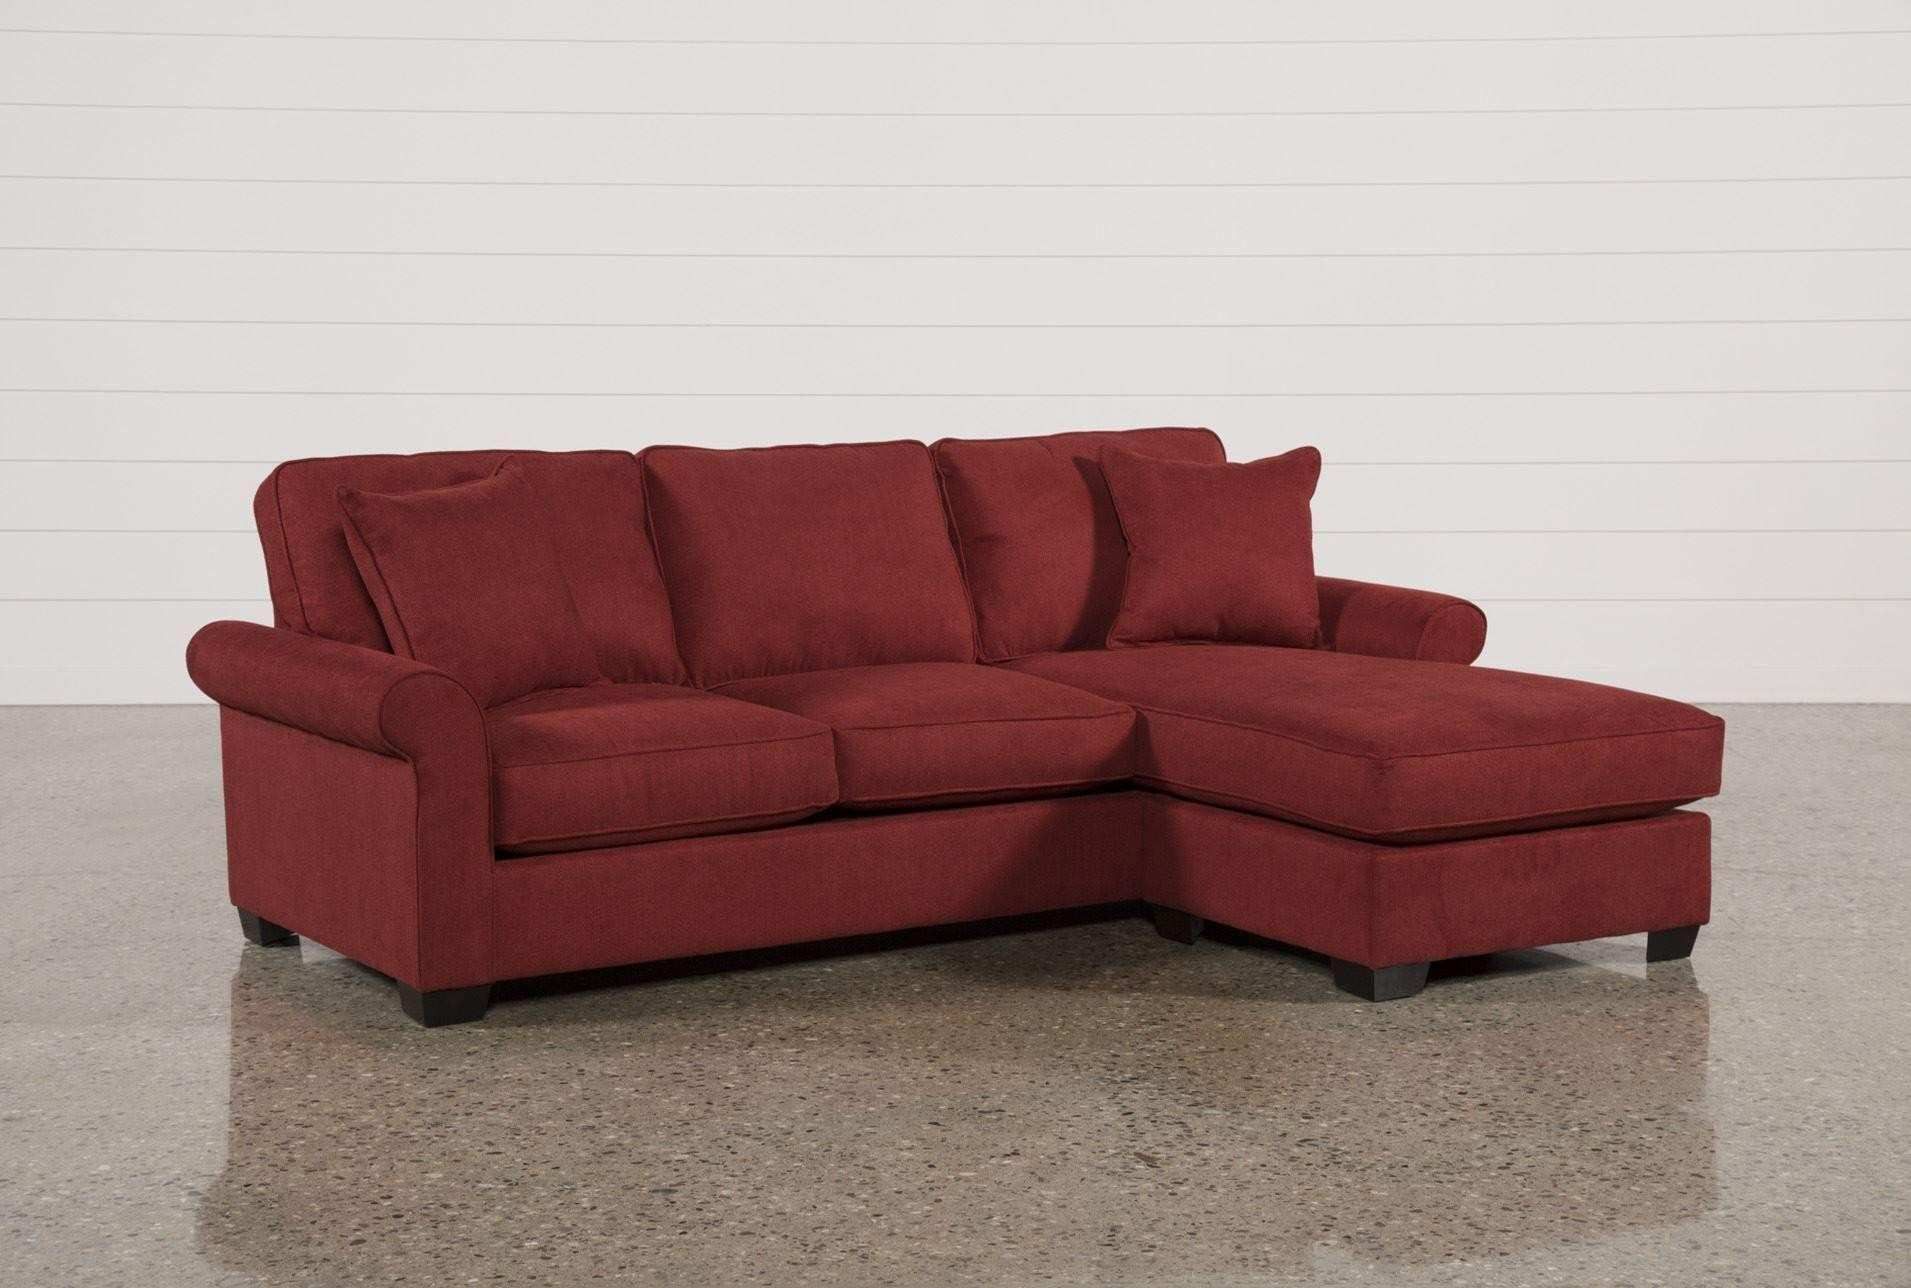 Furniture Best Leather Loveseats Leather Loveseats 0d Furnitures